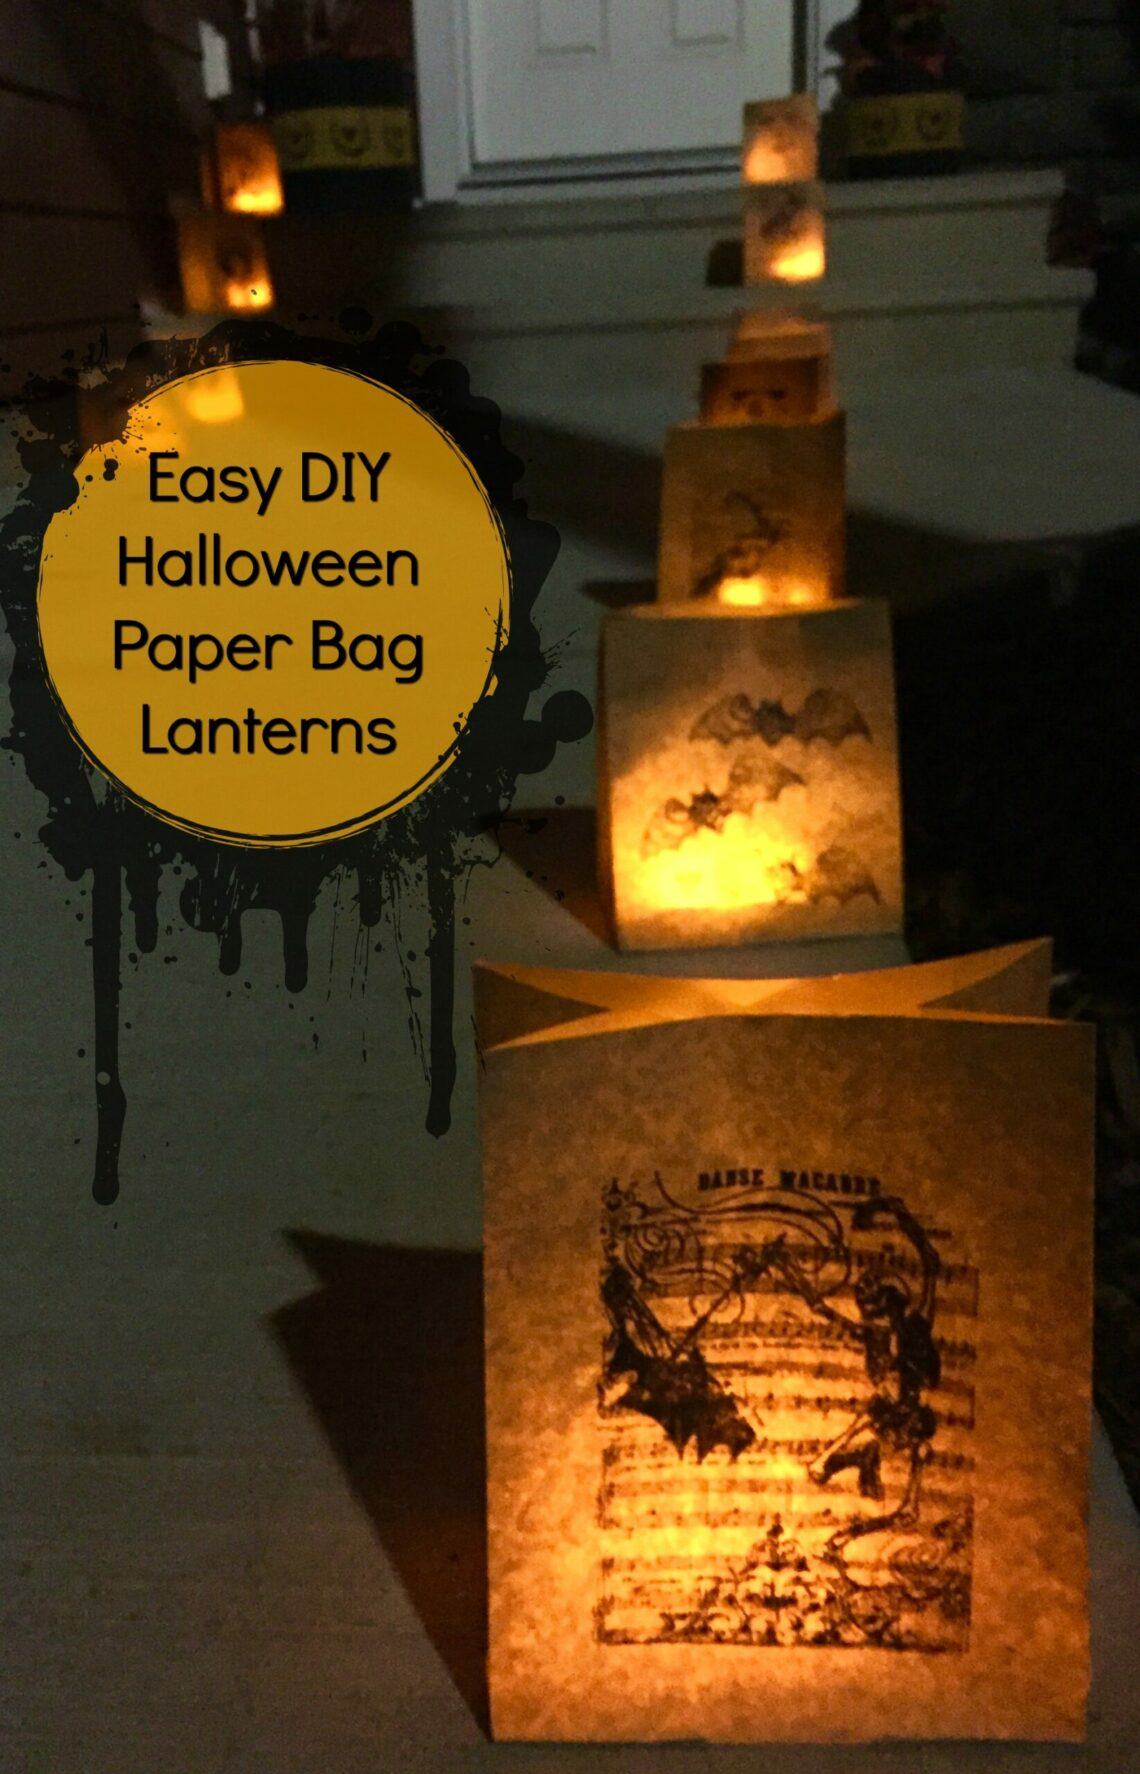 Easy Diy Halloween Paper Bag Lanterns And Then Home